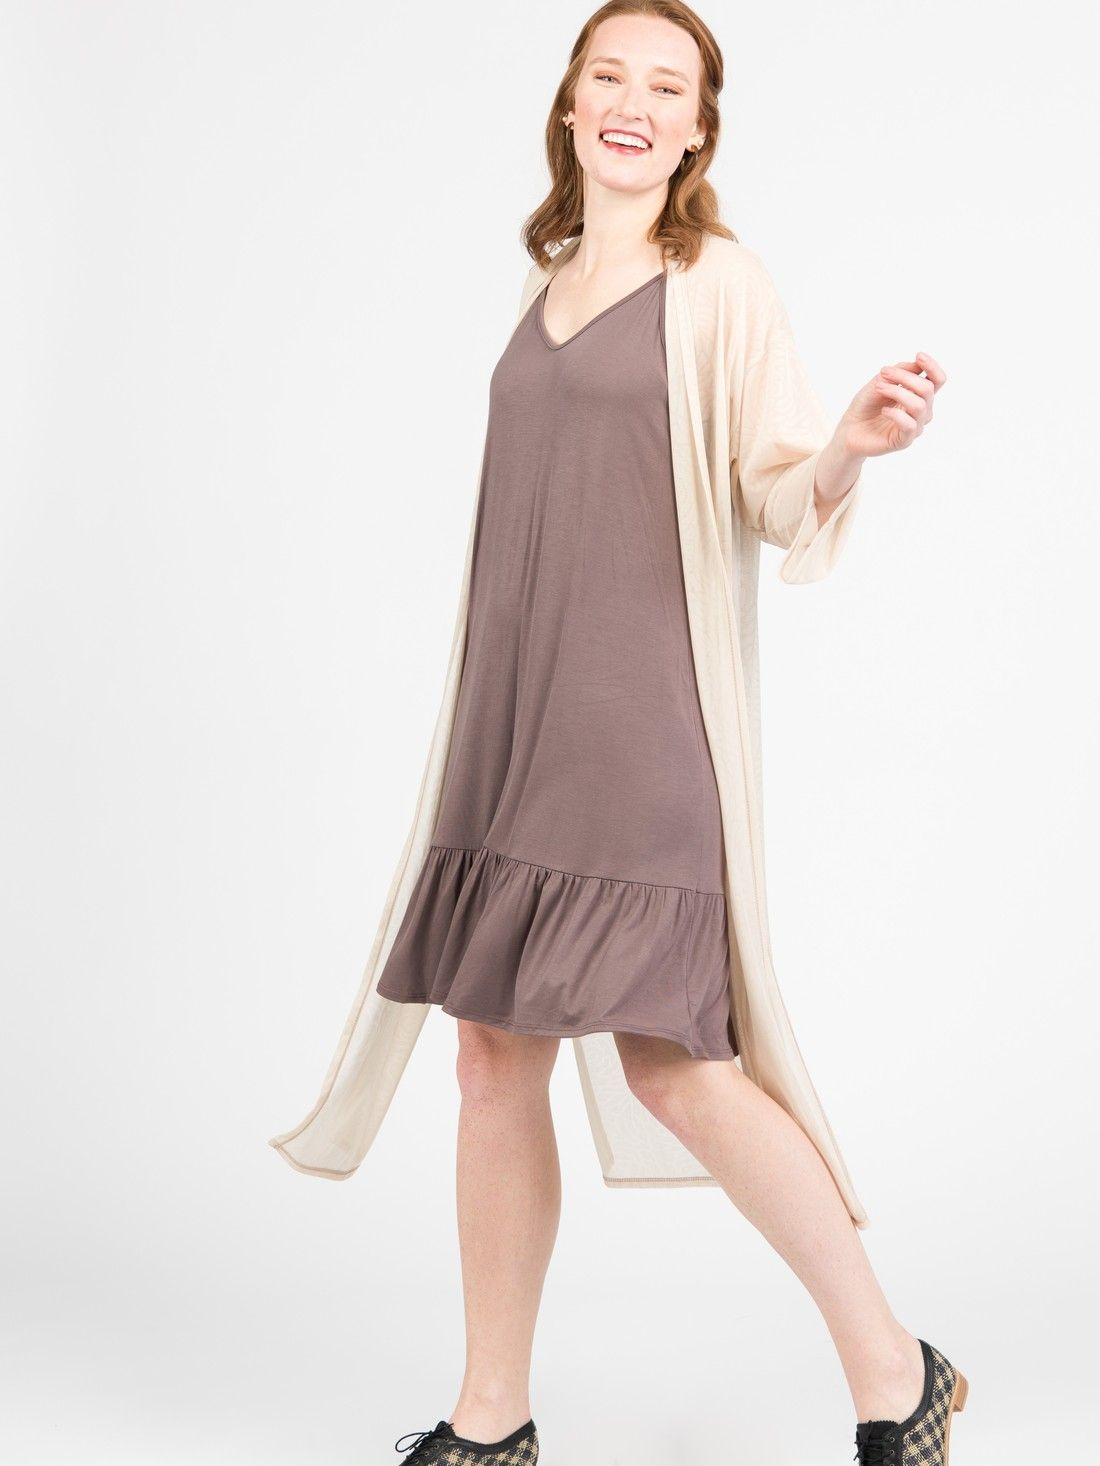 ed8f2833993 Agnes and Dora Slip Dress - Direct Sales Member Article By Beth Hodges  #agnesanddora #summerdress #comfyclothes #slipdress